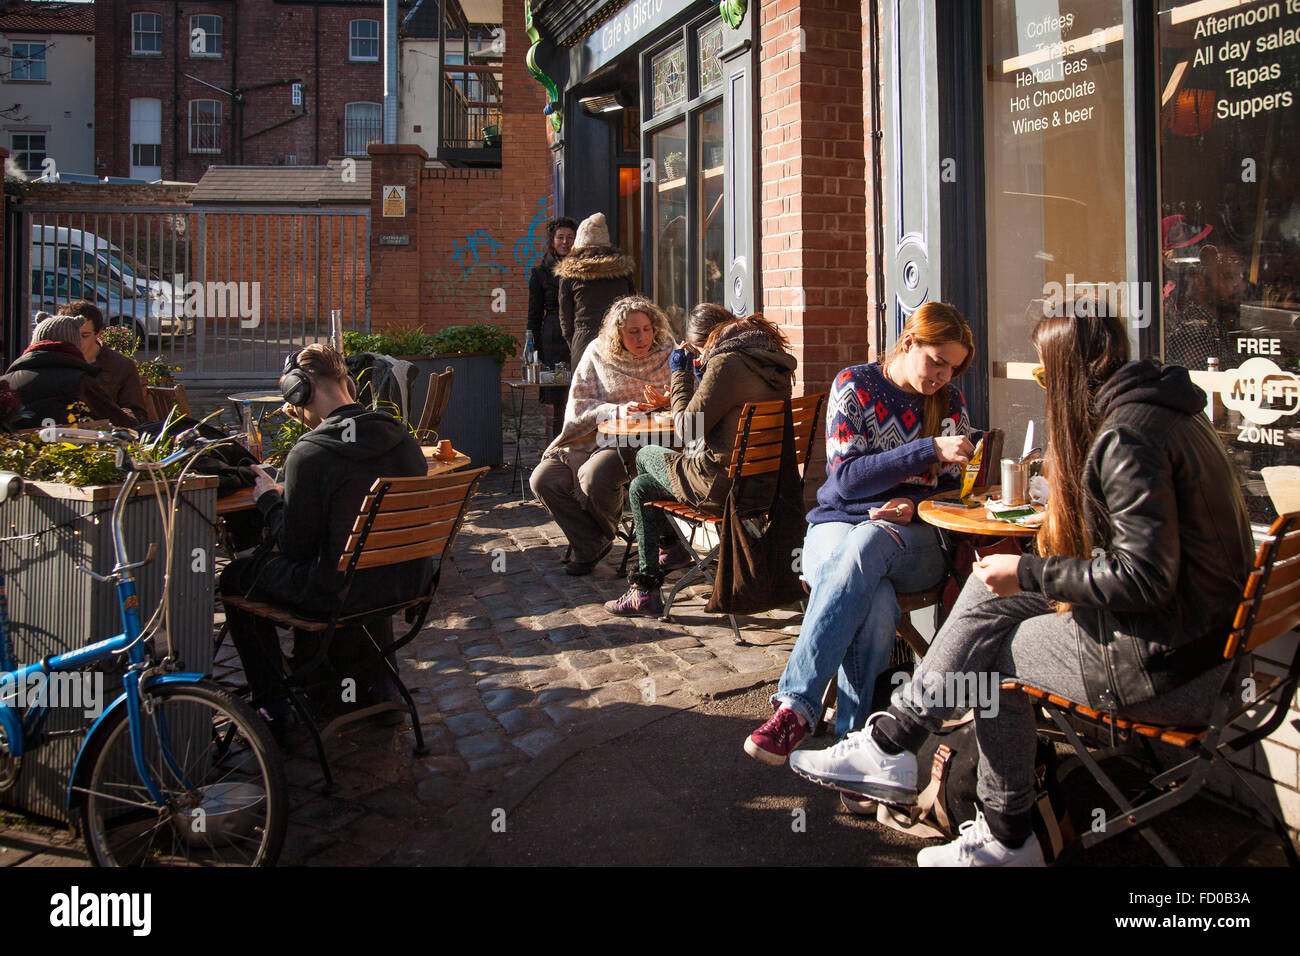 Trendy young people dining alfresco/ outdoors in Stokes Croft, Bristol, England - Stock Image